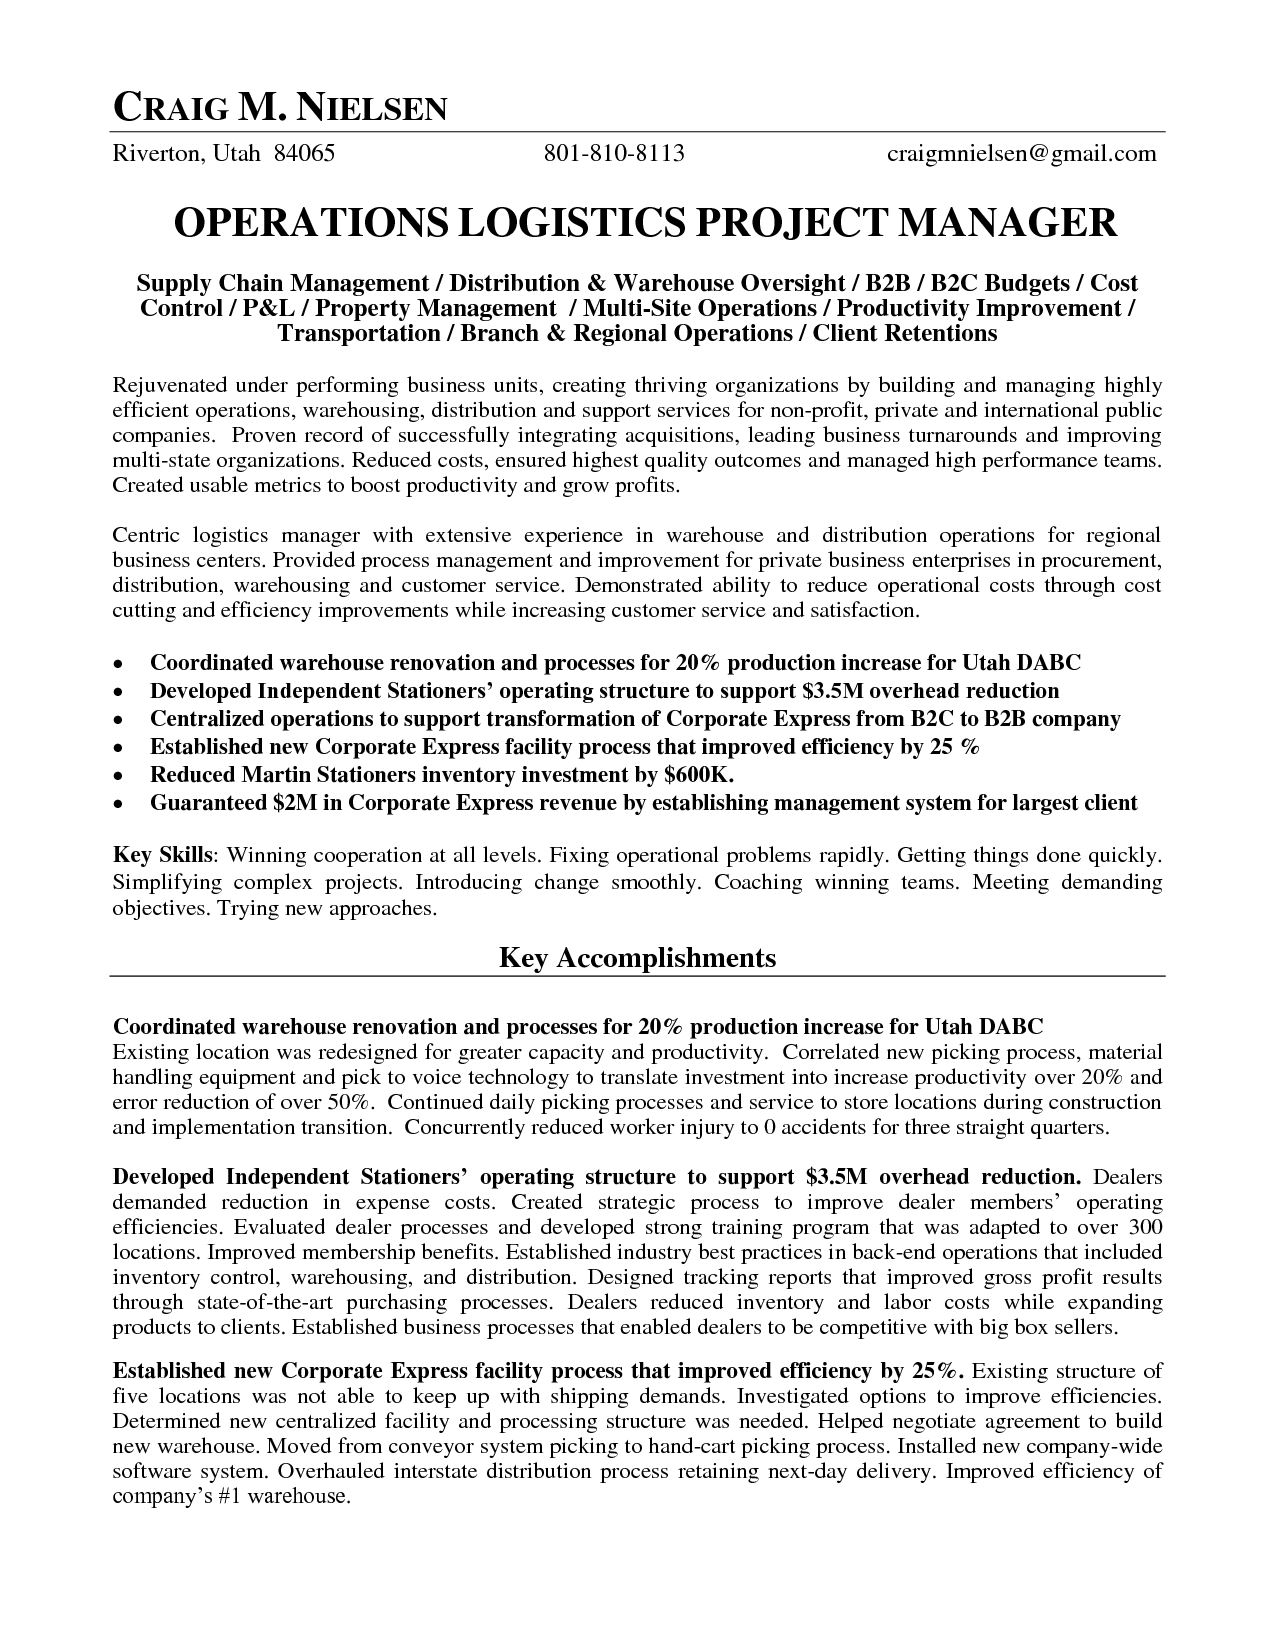 Security Supervisor Resume Logistics Operations Manager Resume  Operations Logistics Project